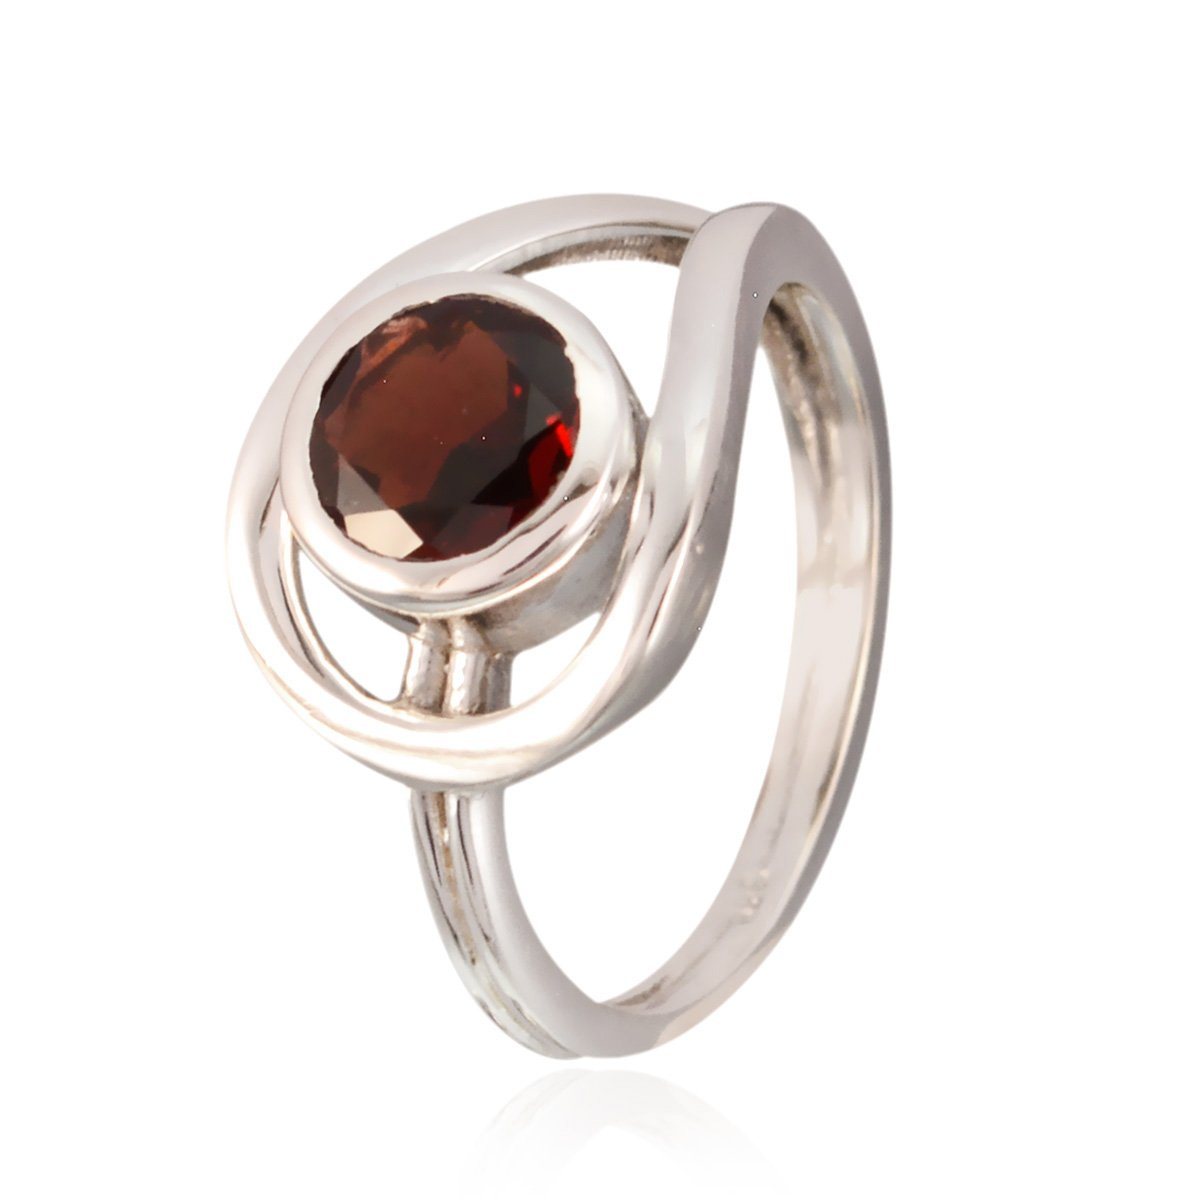 Solid Silver Red Garnet Nice Gemstone Ring Nice Gemstone Round Faceted Garnet Rings Supply Jewelry top Selling Shops Gift for Teachers Day Modern Stacking Ring